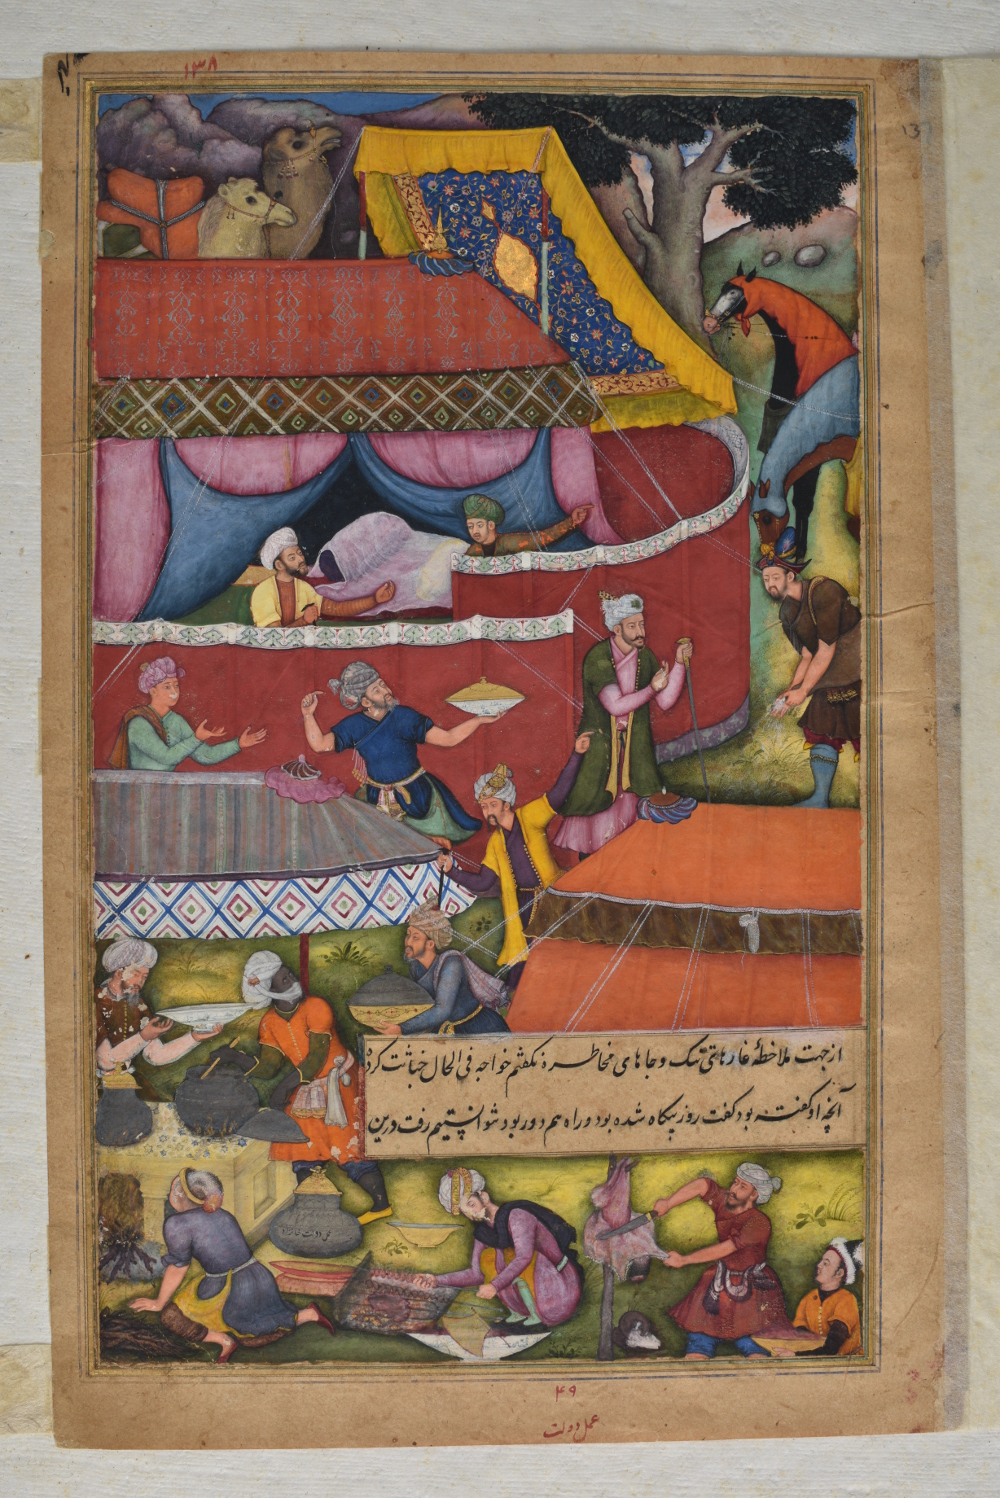 Two folios from the Baburnama: Folio one - Ink and opaque watercolour on paper, mineral pigmentAbout AD 1598Probably Agra, Uttar Pradesh, IndiaNational Museum, New DelhiZahir al-Din Muhammad Babur (1483–1530) founded the Mughal Empire in 1526. Having been deposed from his throne in Ferghana (in Uzbekistan), Babur had spent the larger part of his life in search of such an empire. This painting from the Baburnama shows Babur's encampment, a veritable mobile palace, at Kohat in 1505, on his first incursion to the subcontinent from Central Asia. The painting depicts the feasts that followed his raid of Bannu when several local chieftains paid homage at his camp.